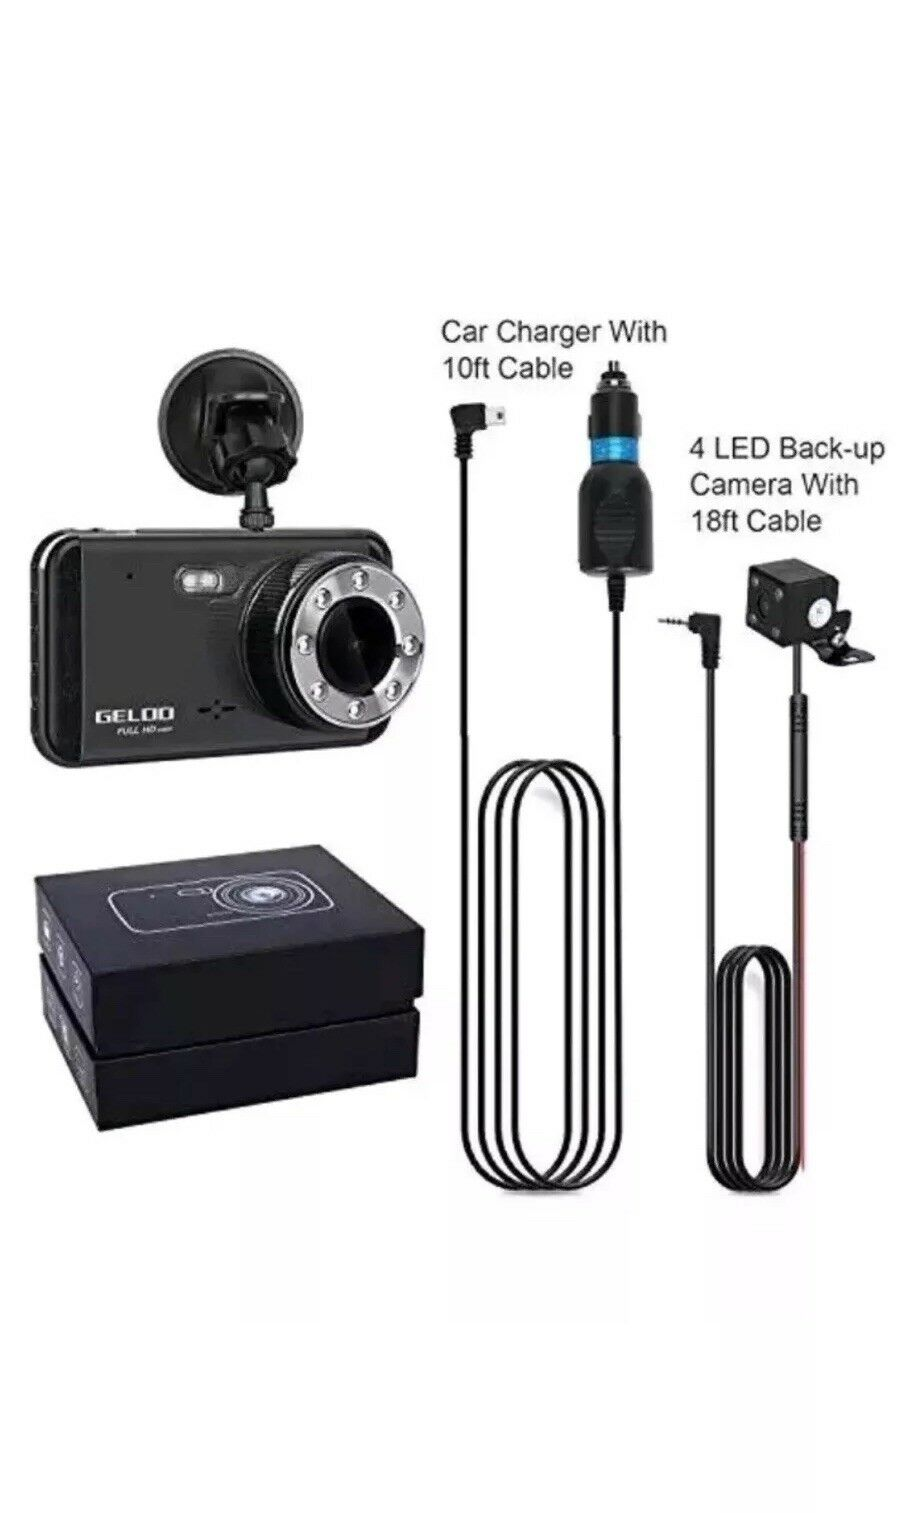 s-l1600 Dash Cam, GELOO 1080P 4.0 Inch Dual Car Dashboard Camera Front and Rear, 170 Wid